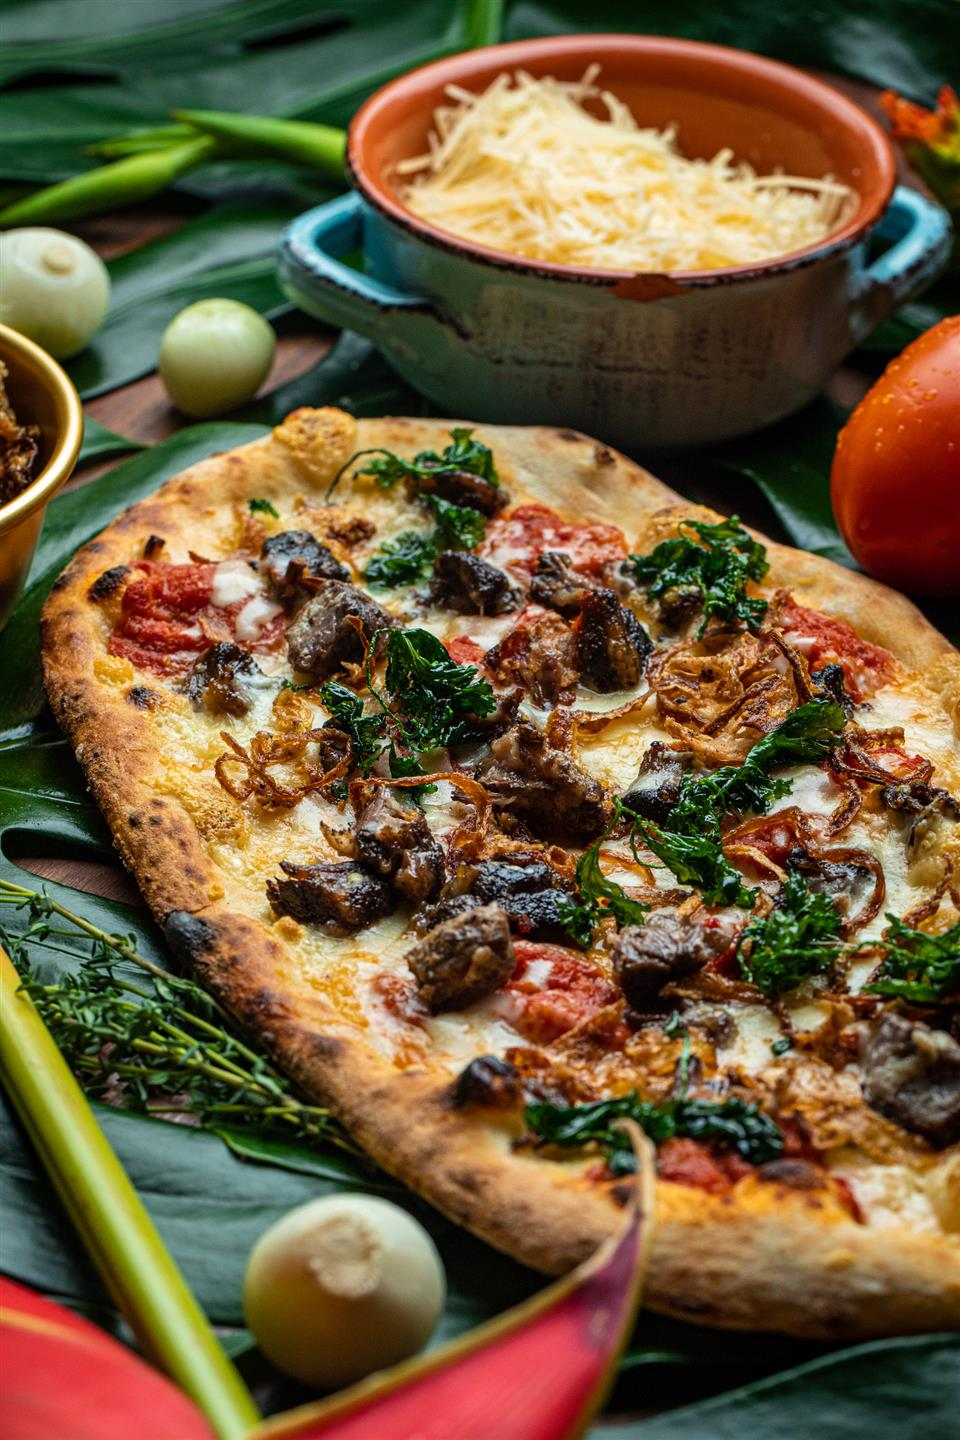 oxtail flatbread with tomato confit, fried onions, blended Italian cheeses